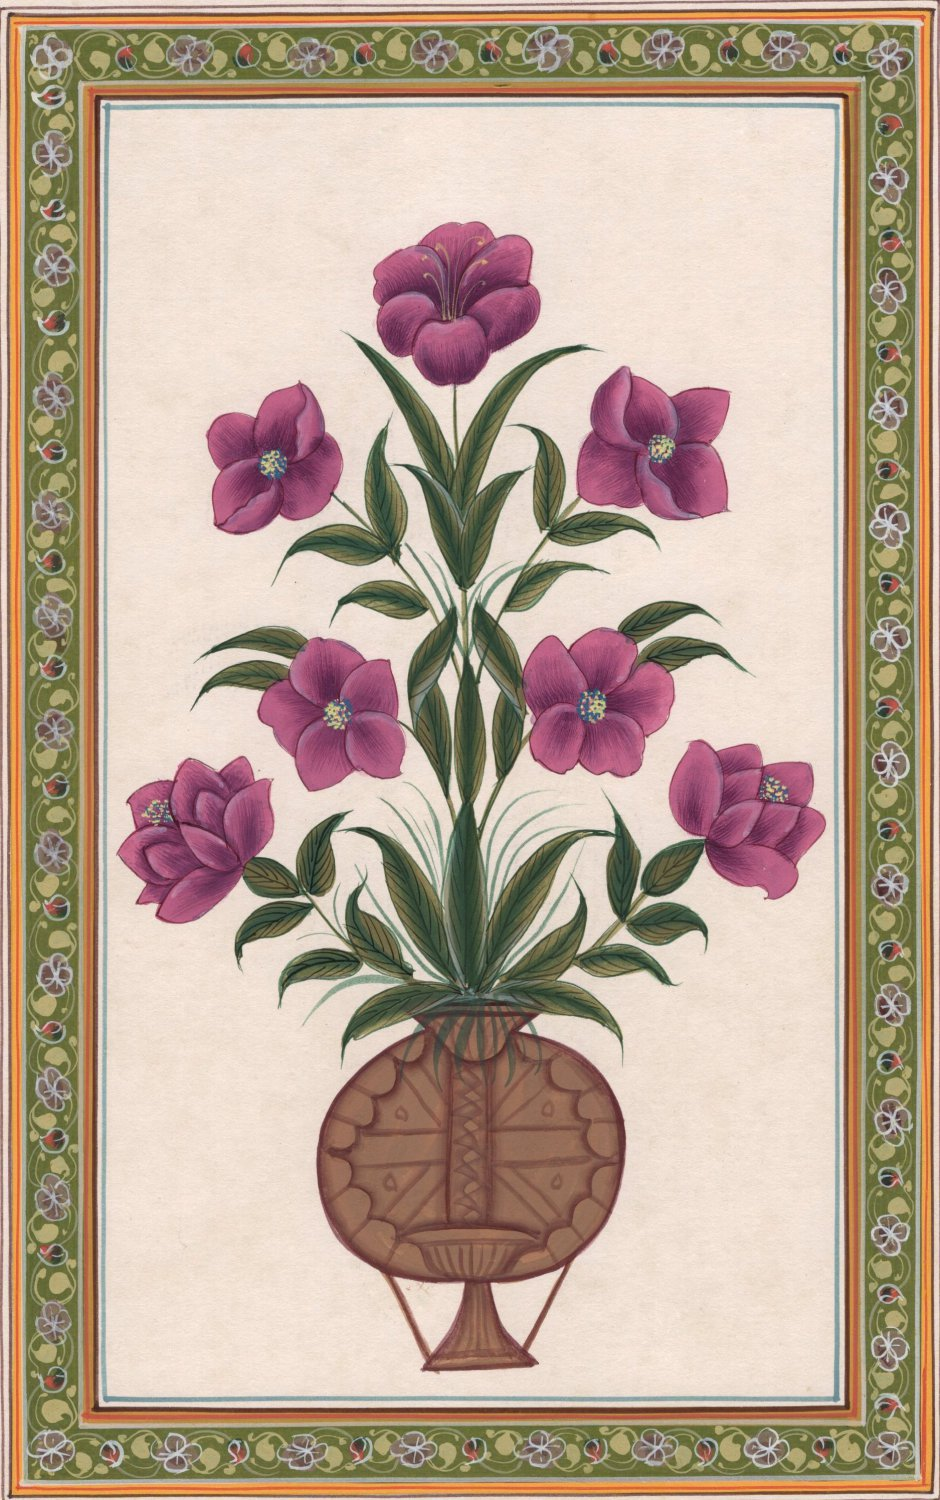 Mughal floral miniature painting moghul indian handmade nature lotus mughal floral miniature painting moghul indian handmade nature lotus flower art izmirmasajfo